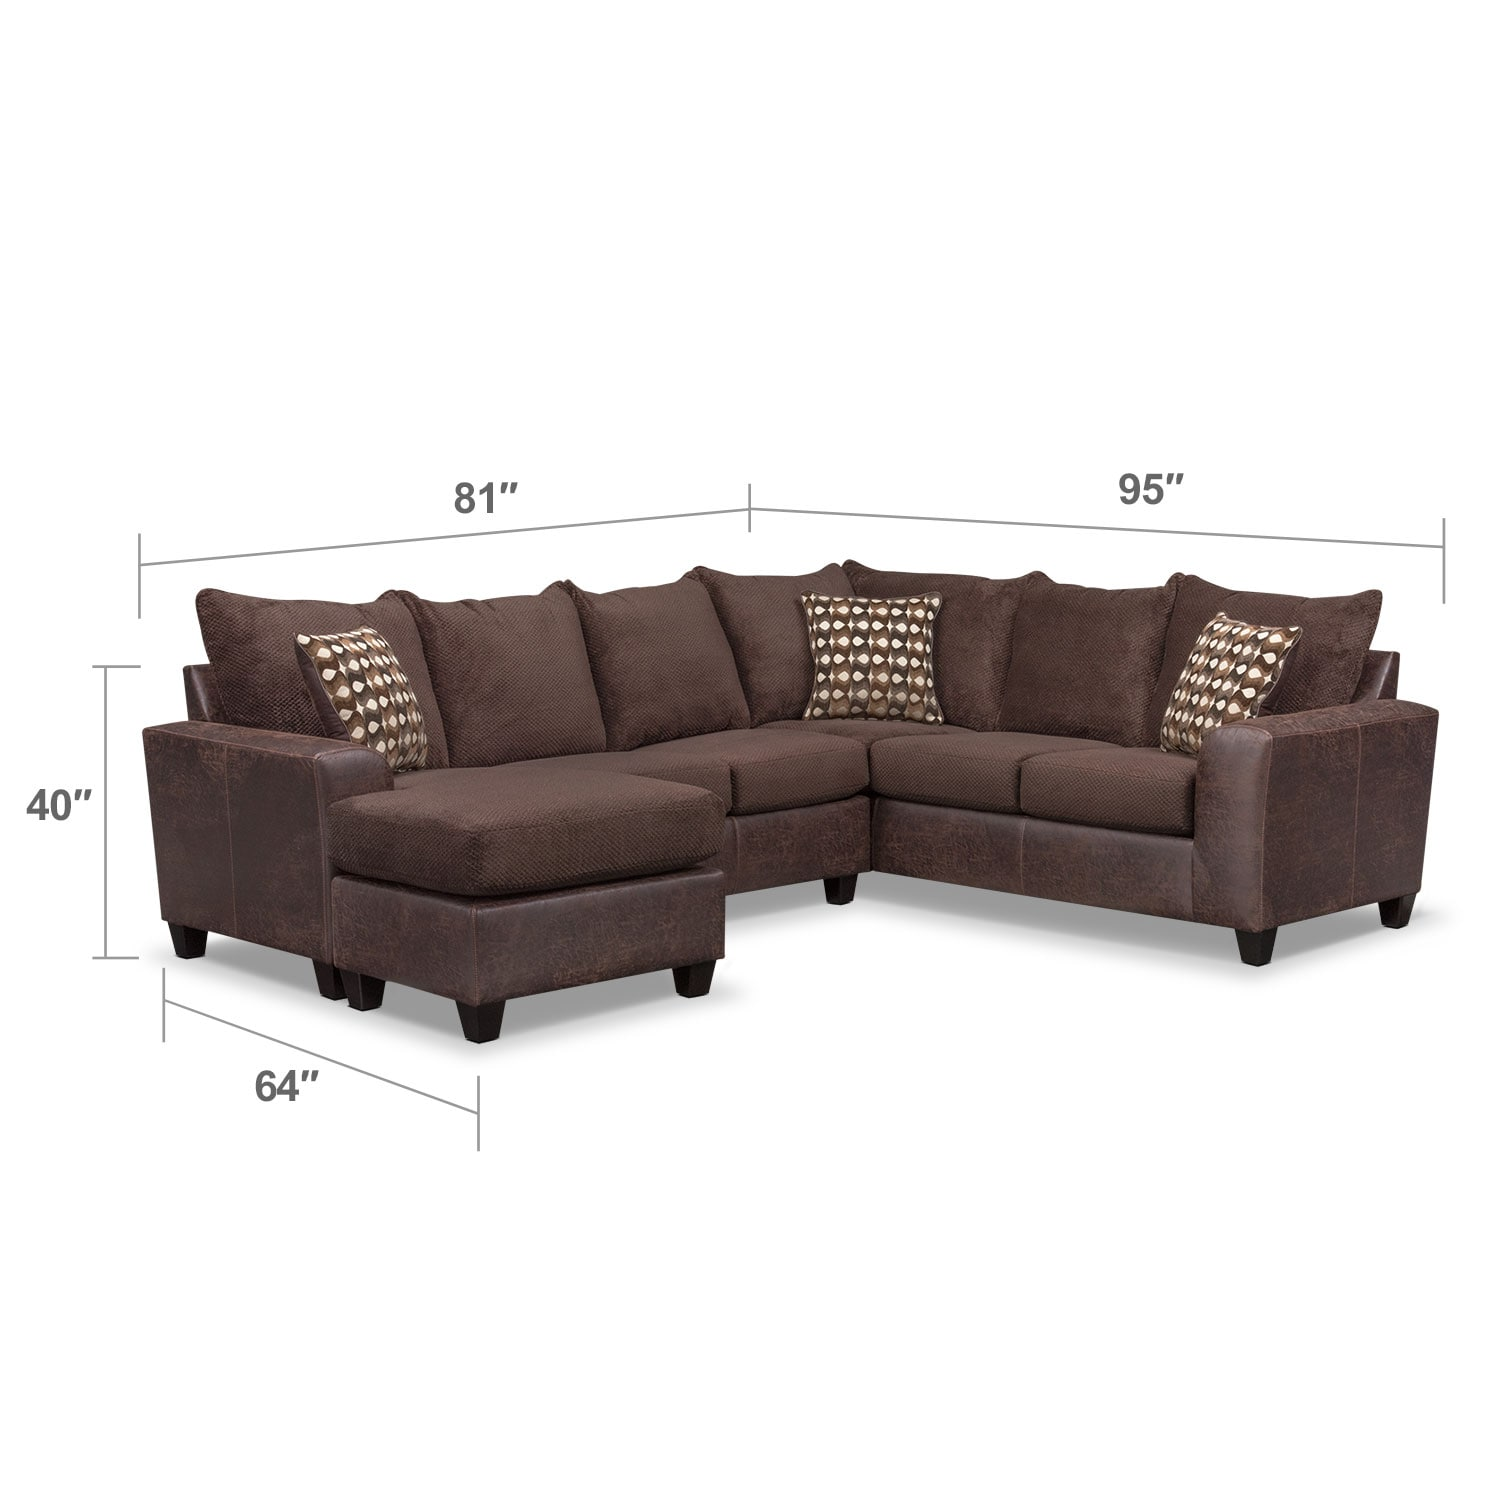 Brando 3 piece sectional with modular chaise chocolate for 3 piece sectional sofa with chaise